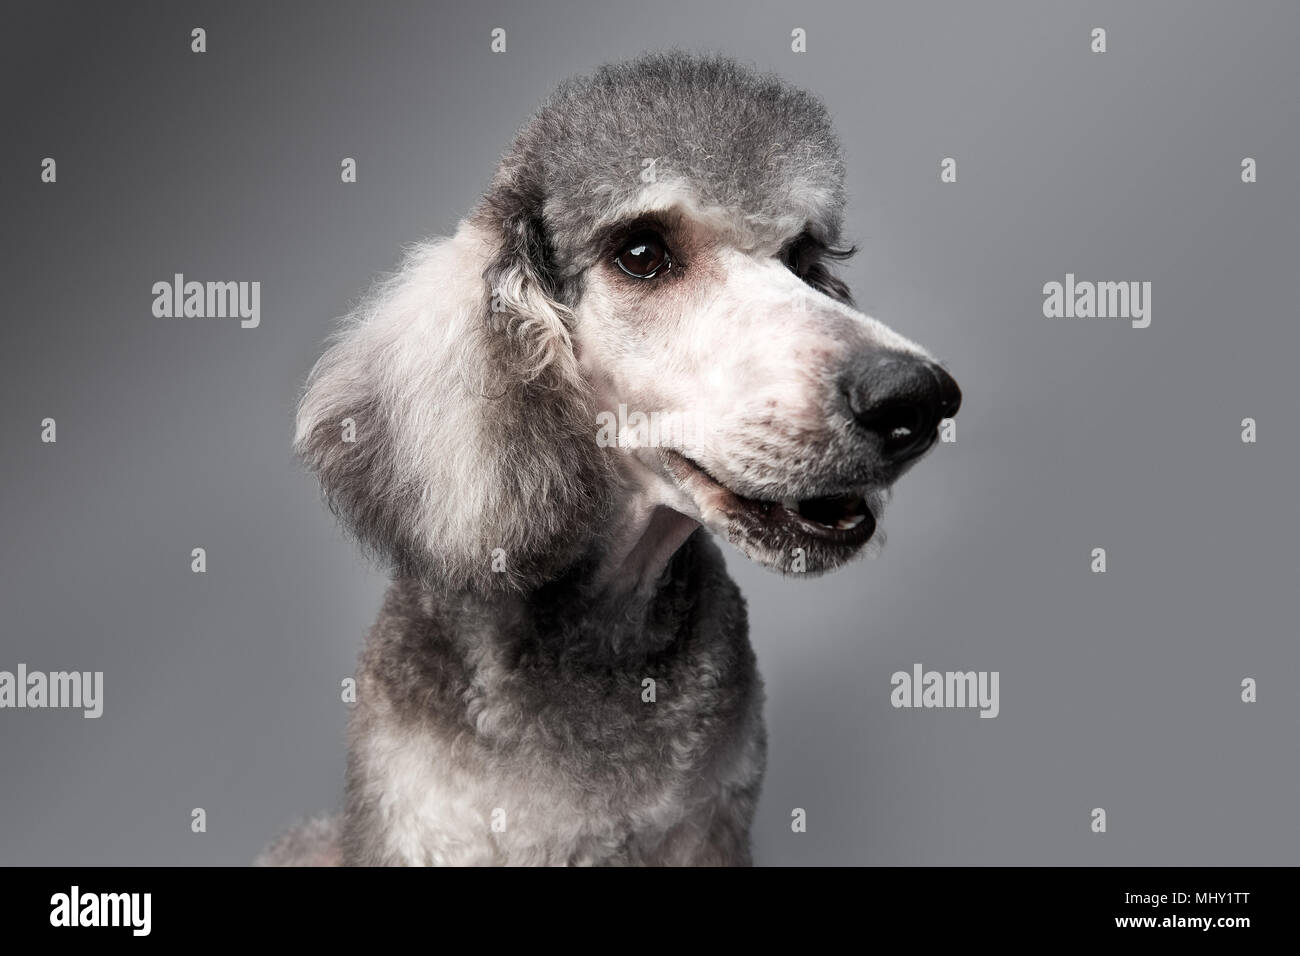 Lovely poodle - Stock Image